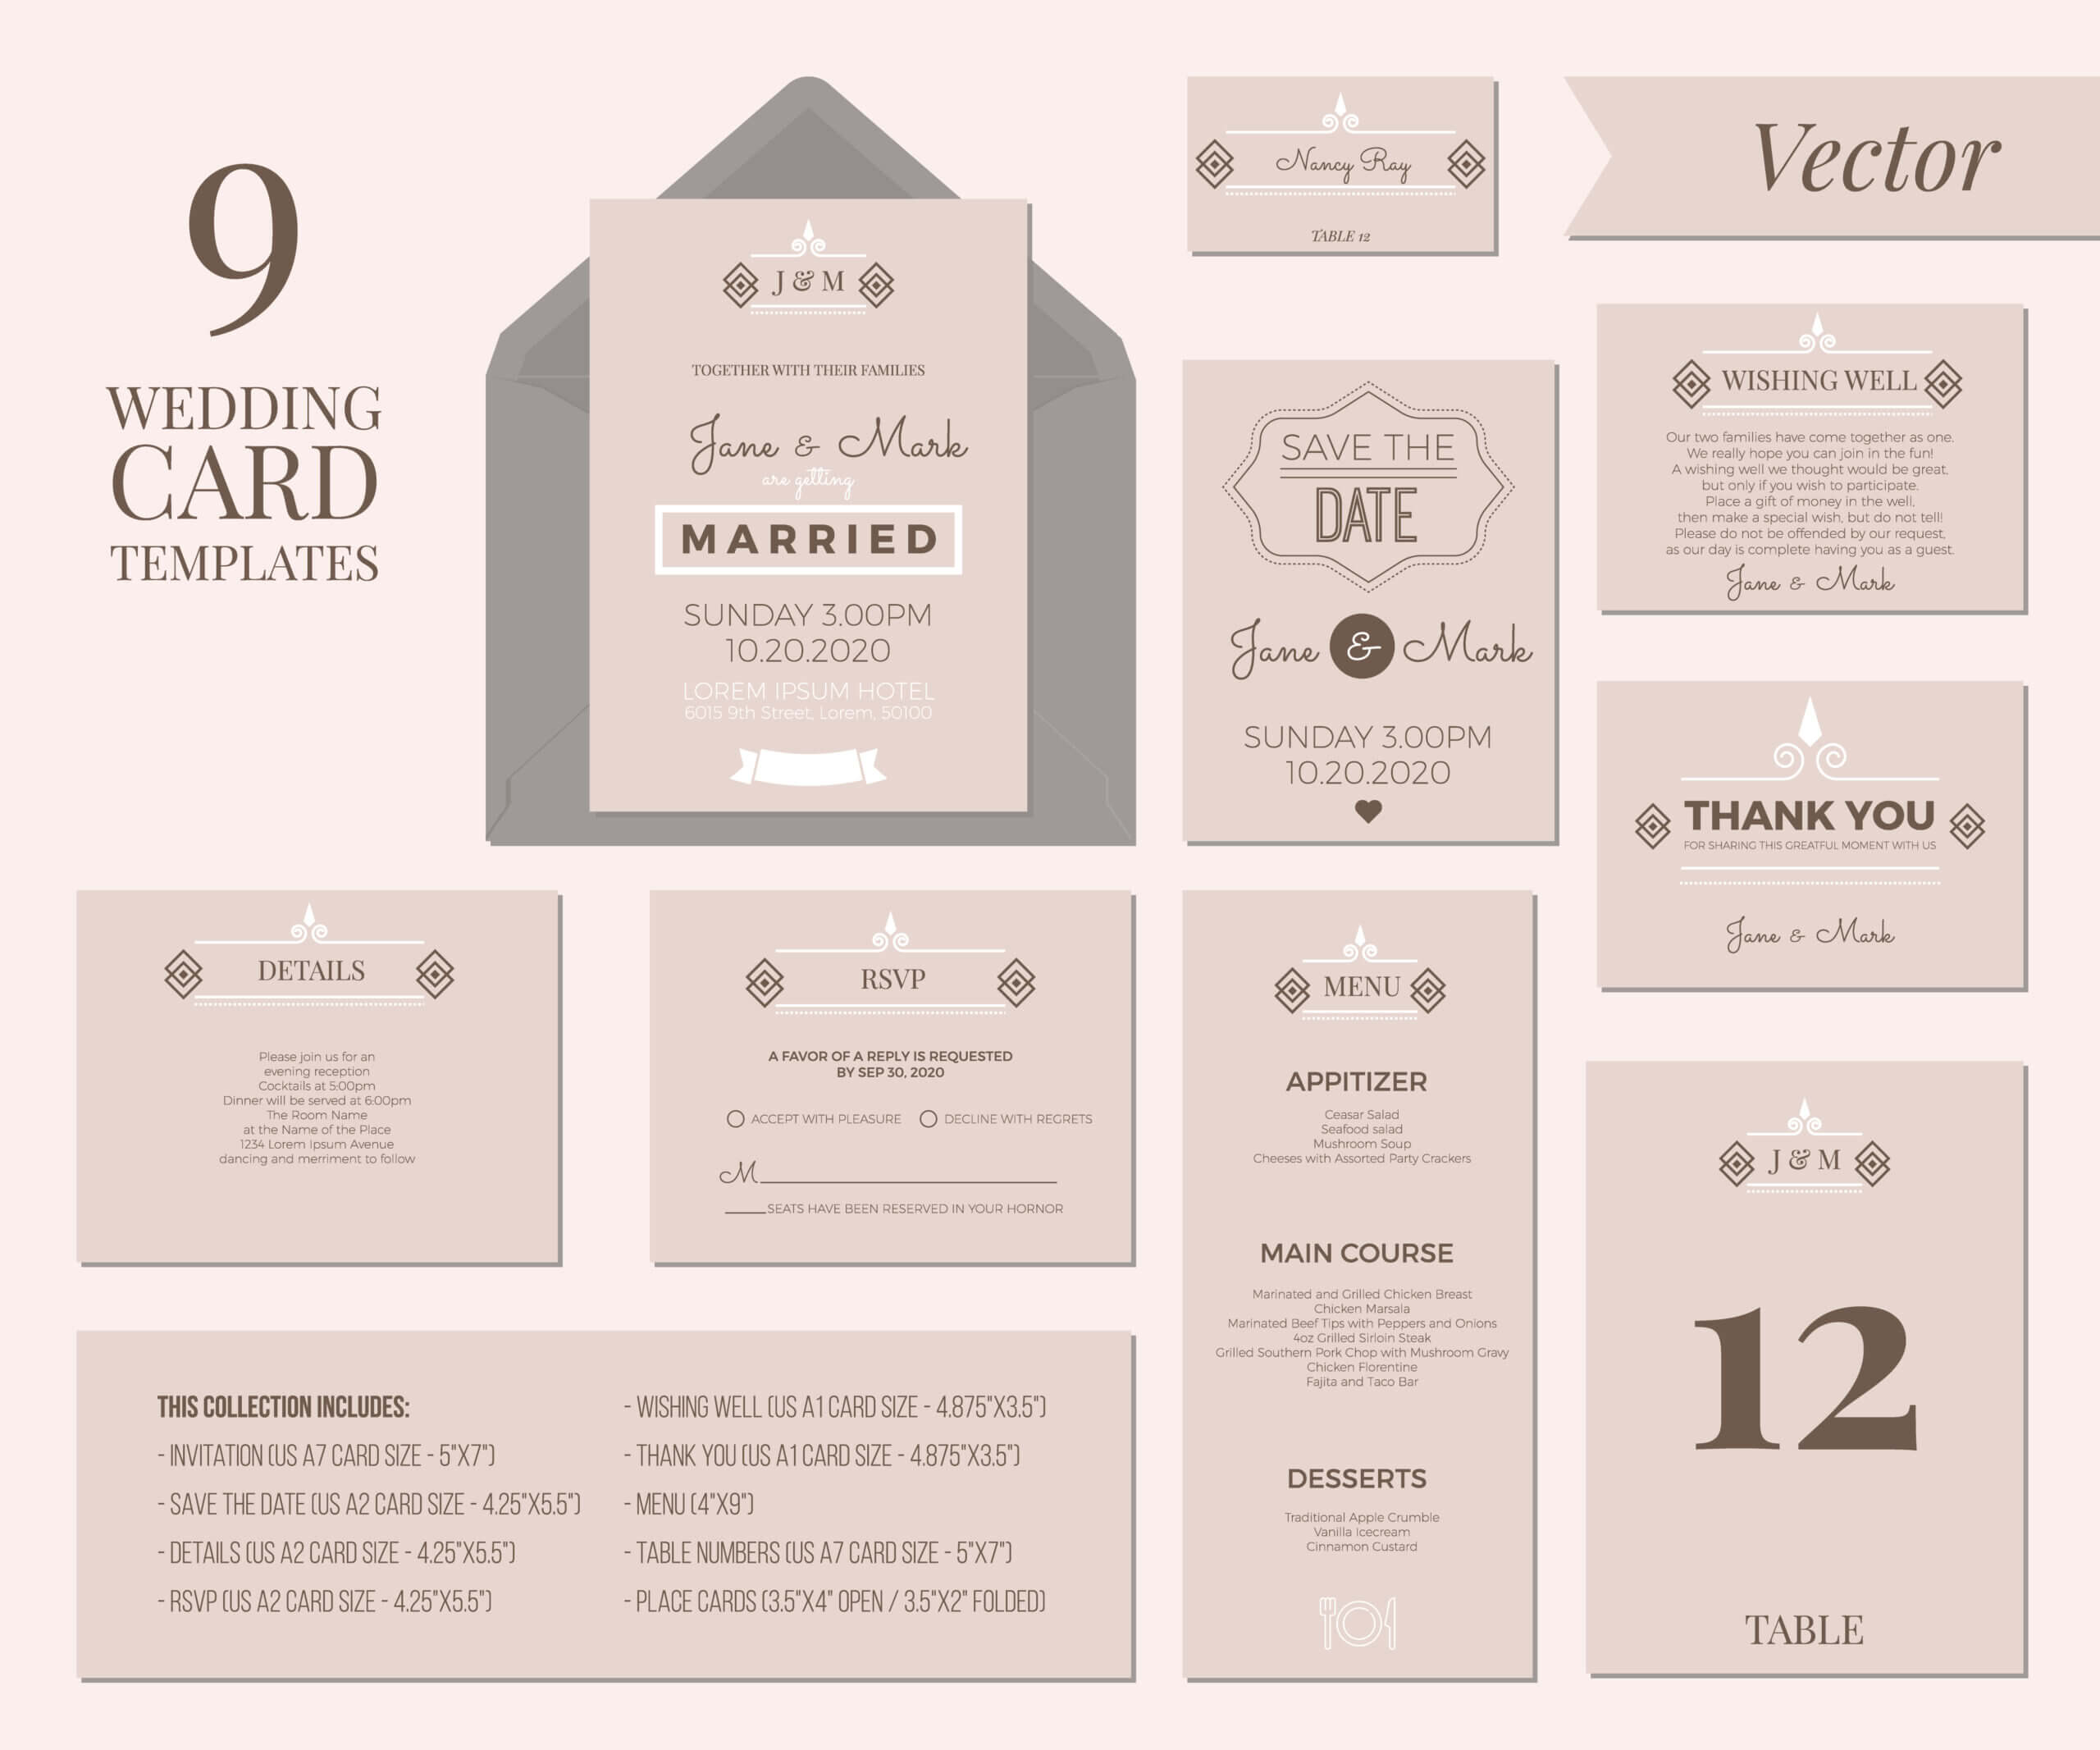 Wedding Invitation Template - Download Free Vectors, Clipart With Wedding Card Size Template